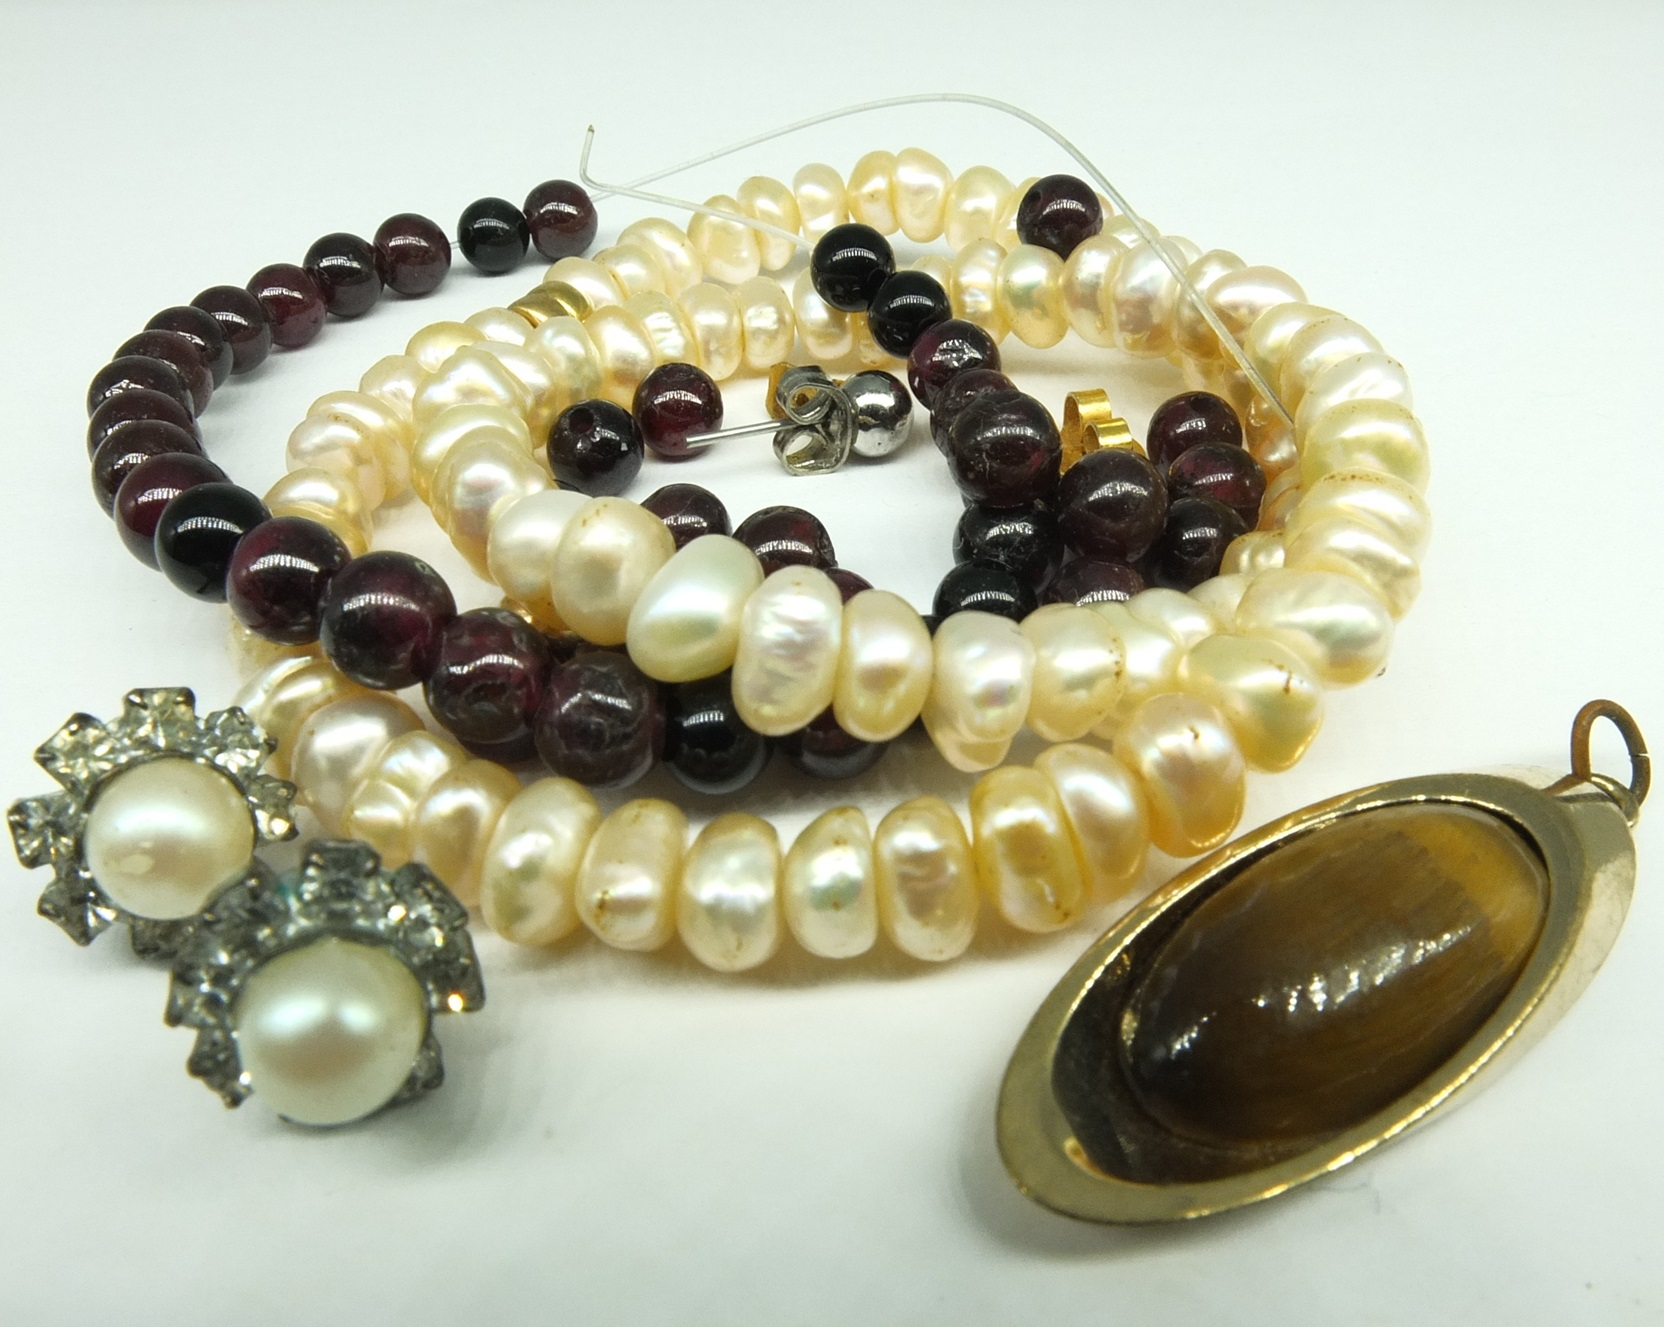 'Broken Garnet Necklace, Tiger Eye in Metal Mount and a Bracelet of Fresh water Pearls'